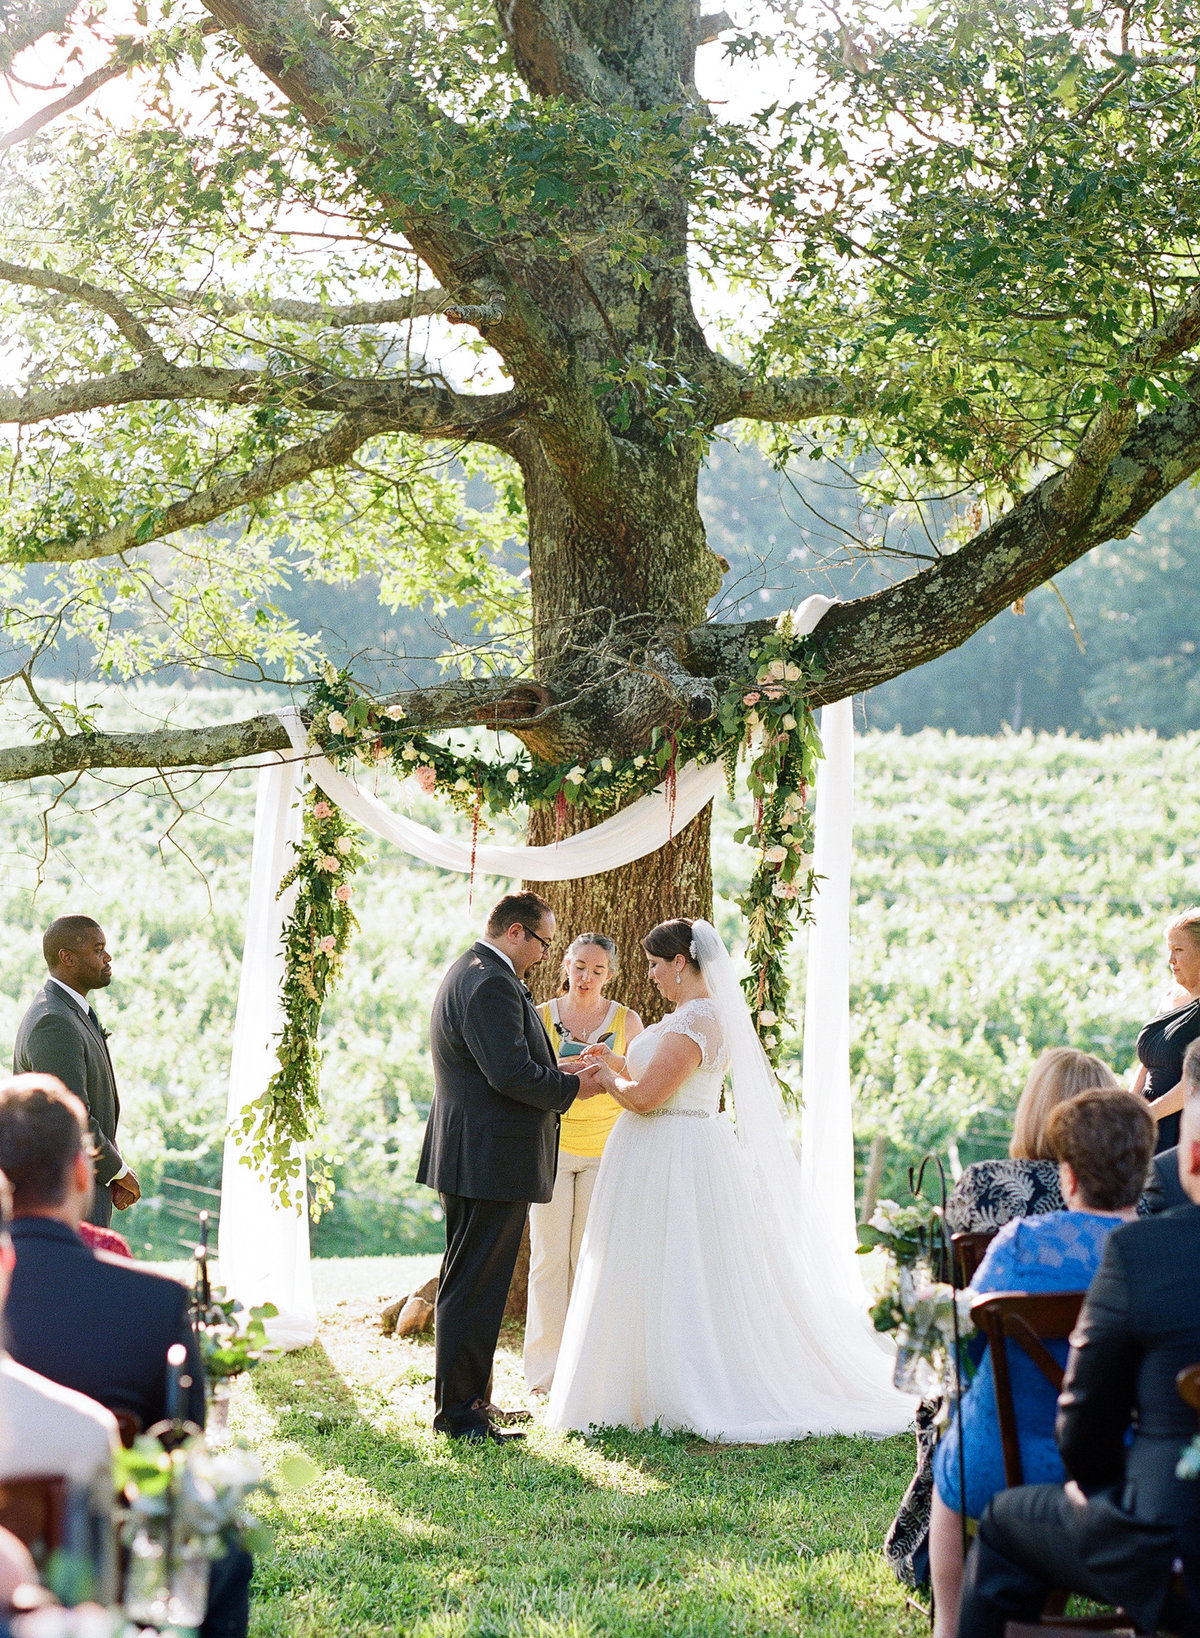 Montaluce Winery Wedding Ceremony